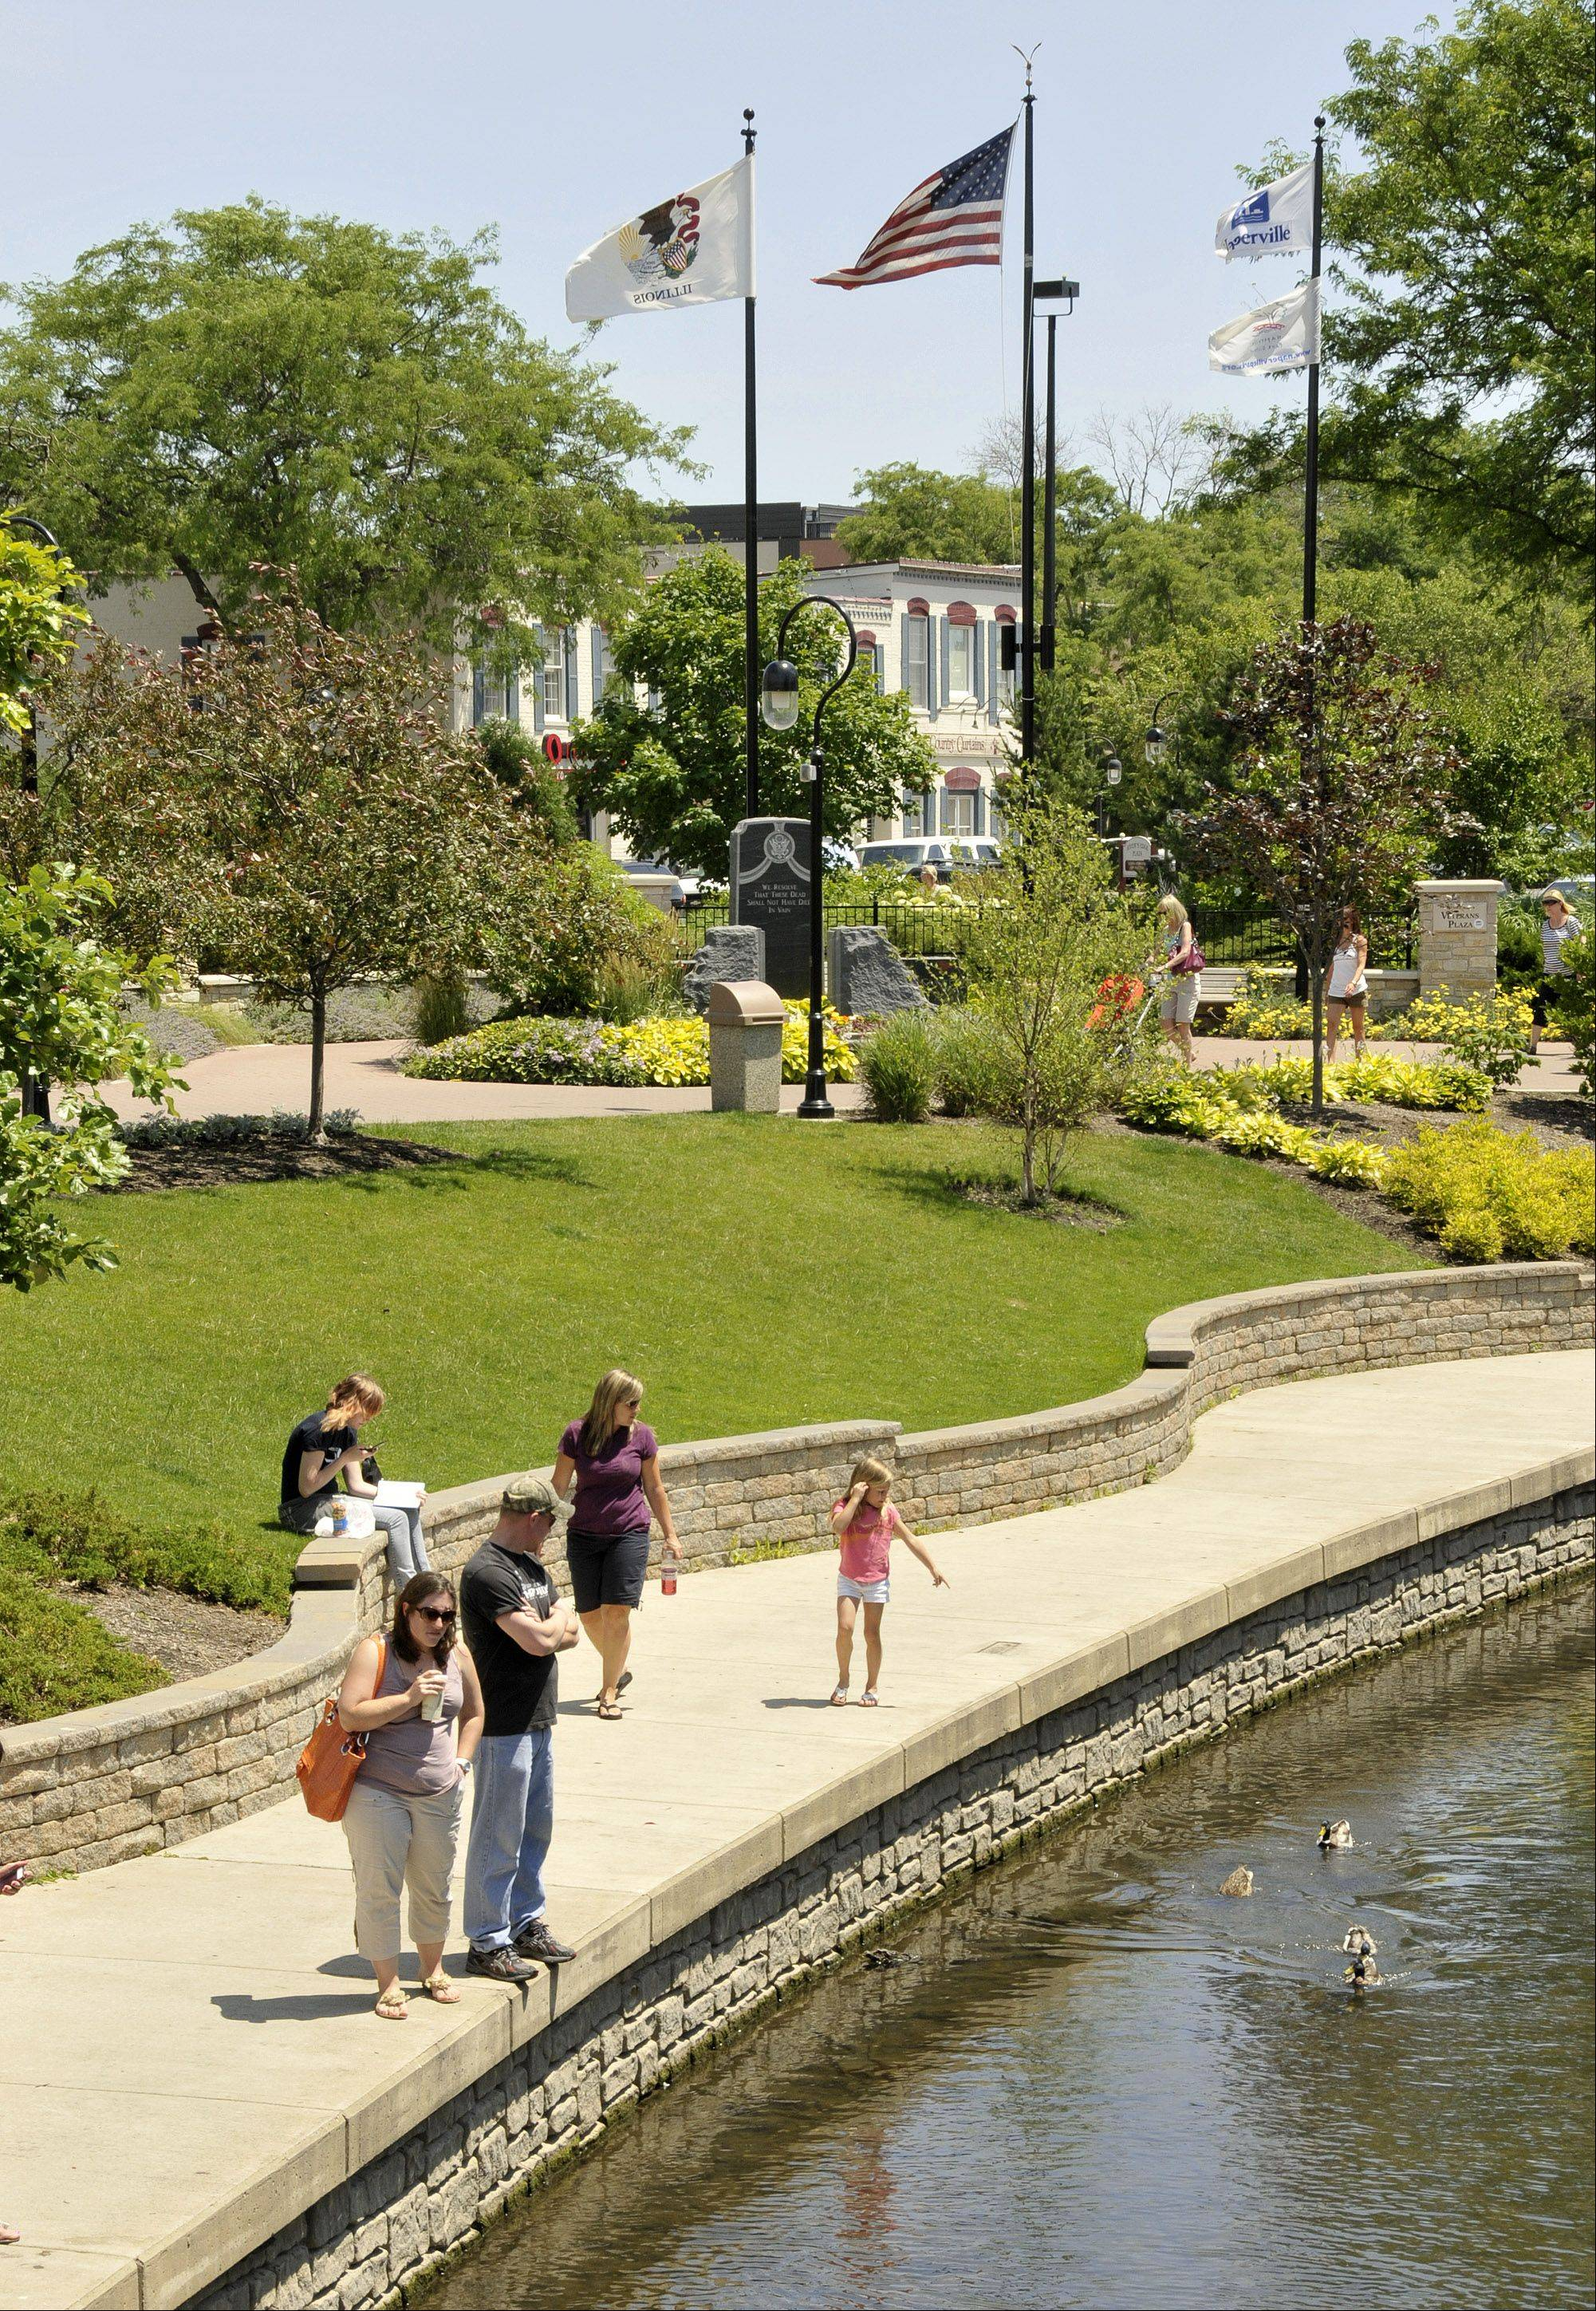 Naperville Riverwalk group wants to make path longer